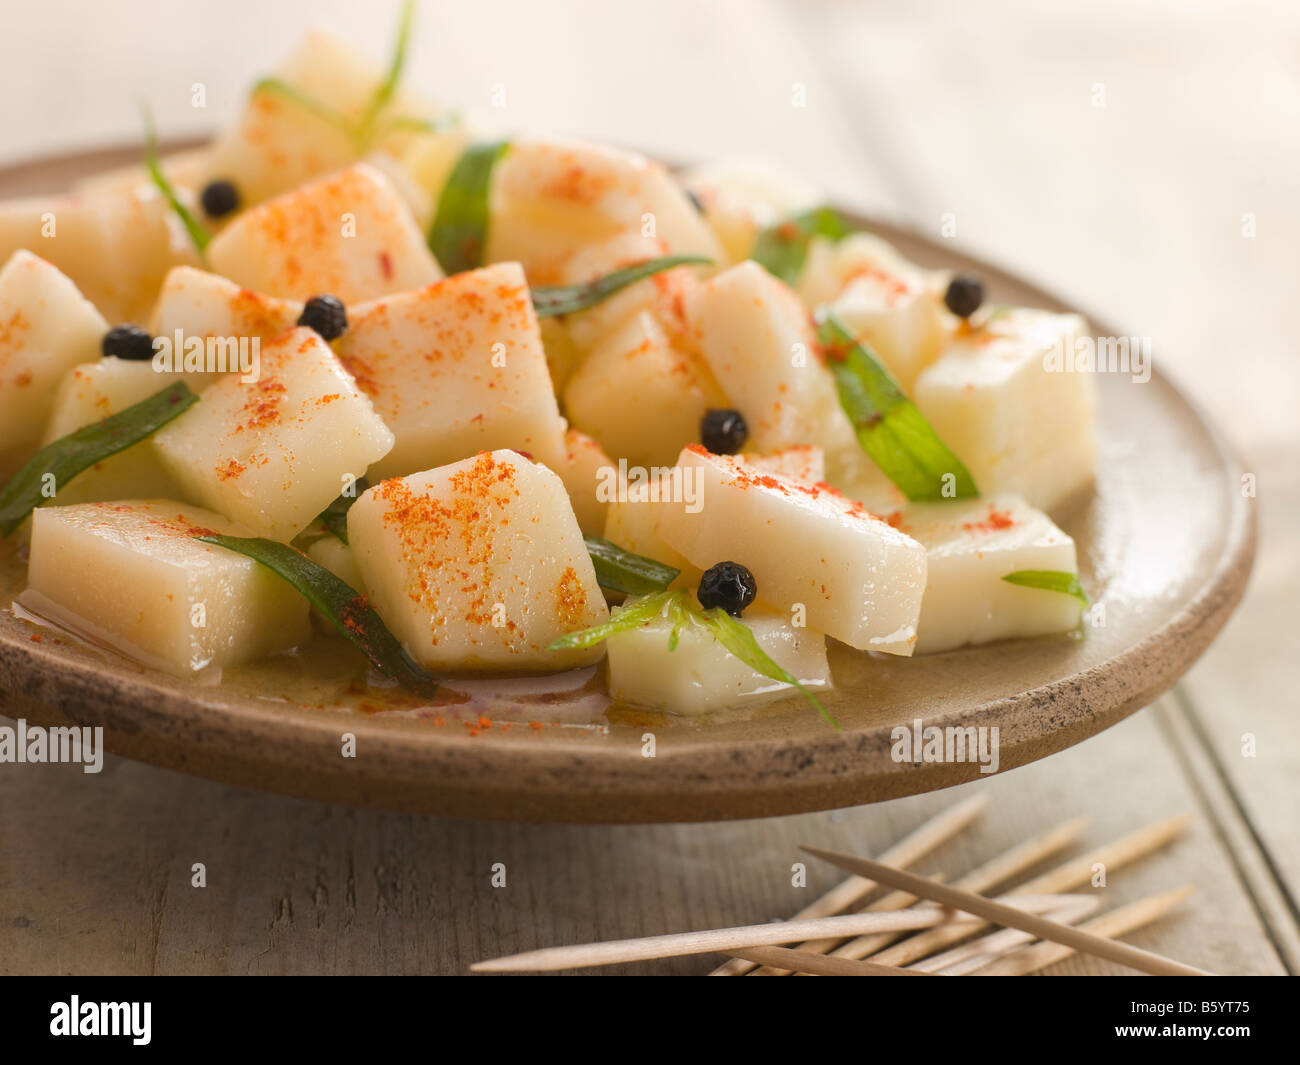 Manchego Marinated in Chili and Tarragon - Stock Image